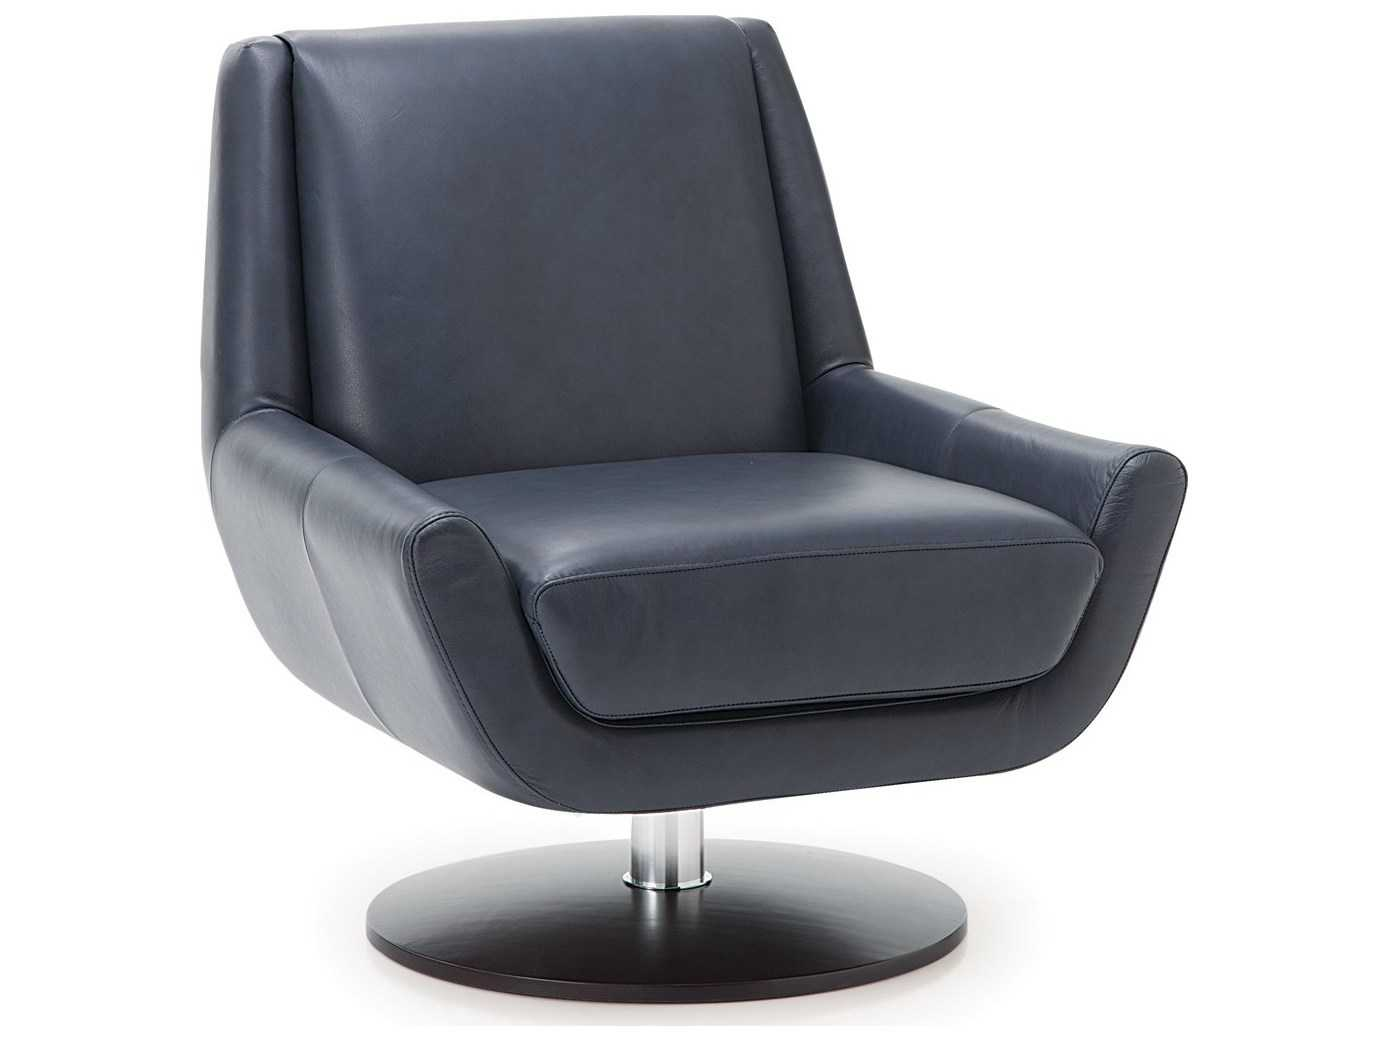 Stationary Chair Palliser Plato Swivel Stationary Chair